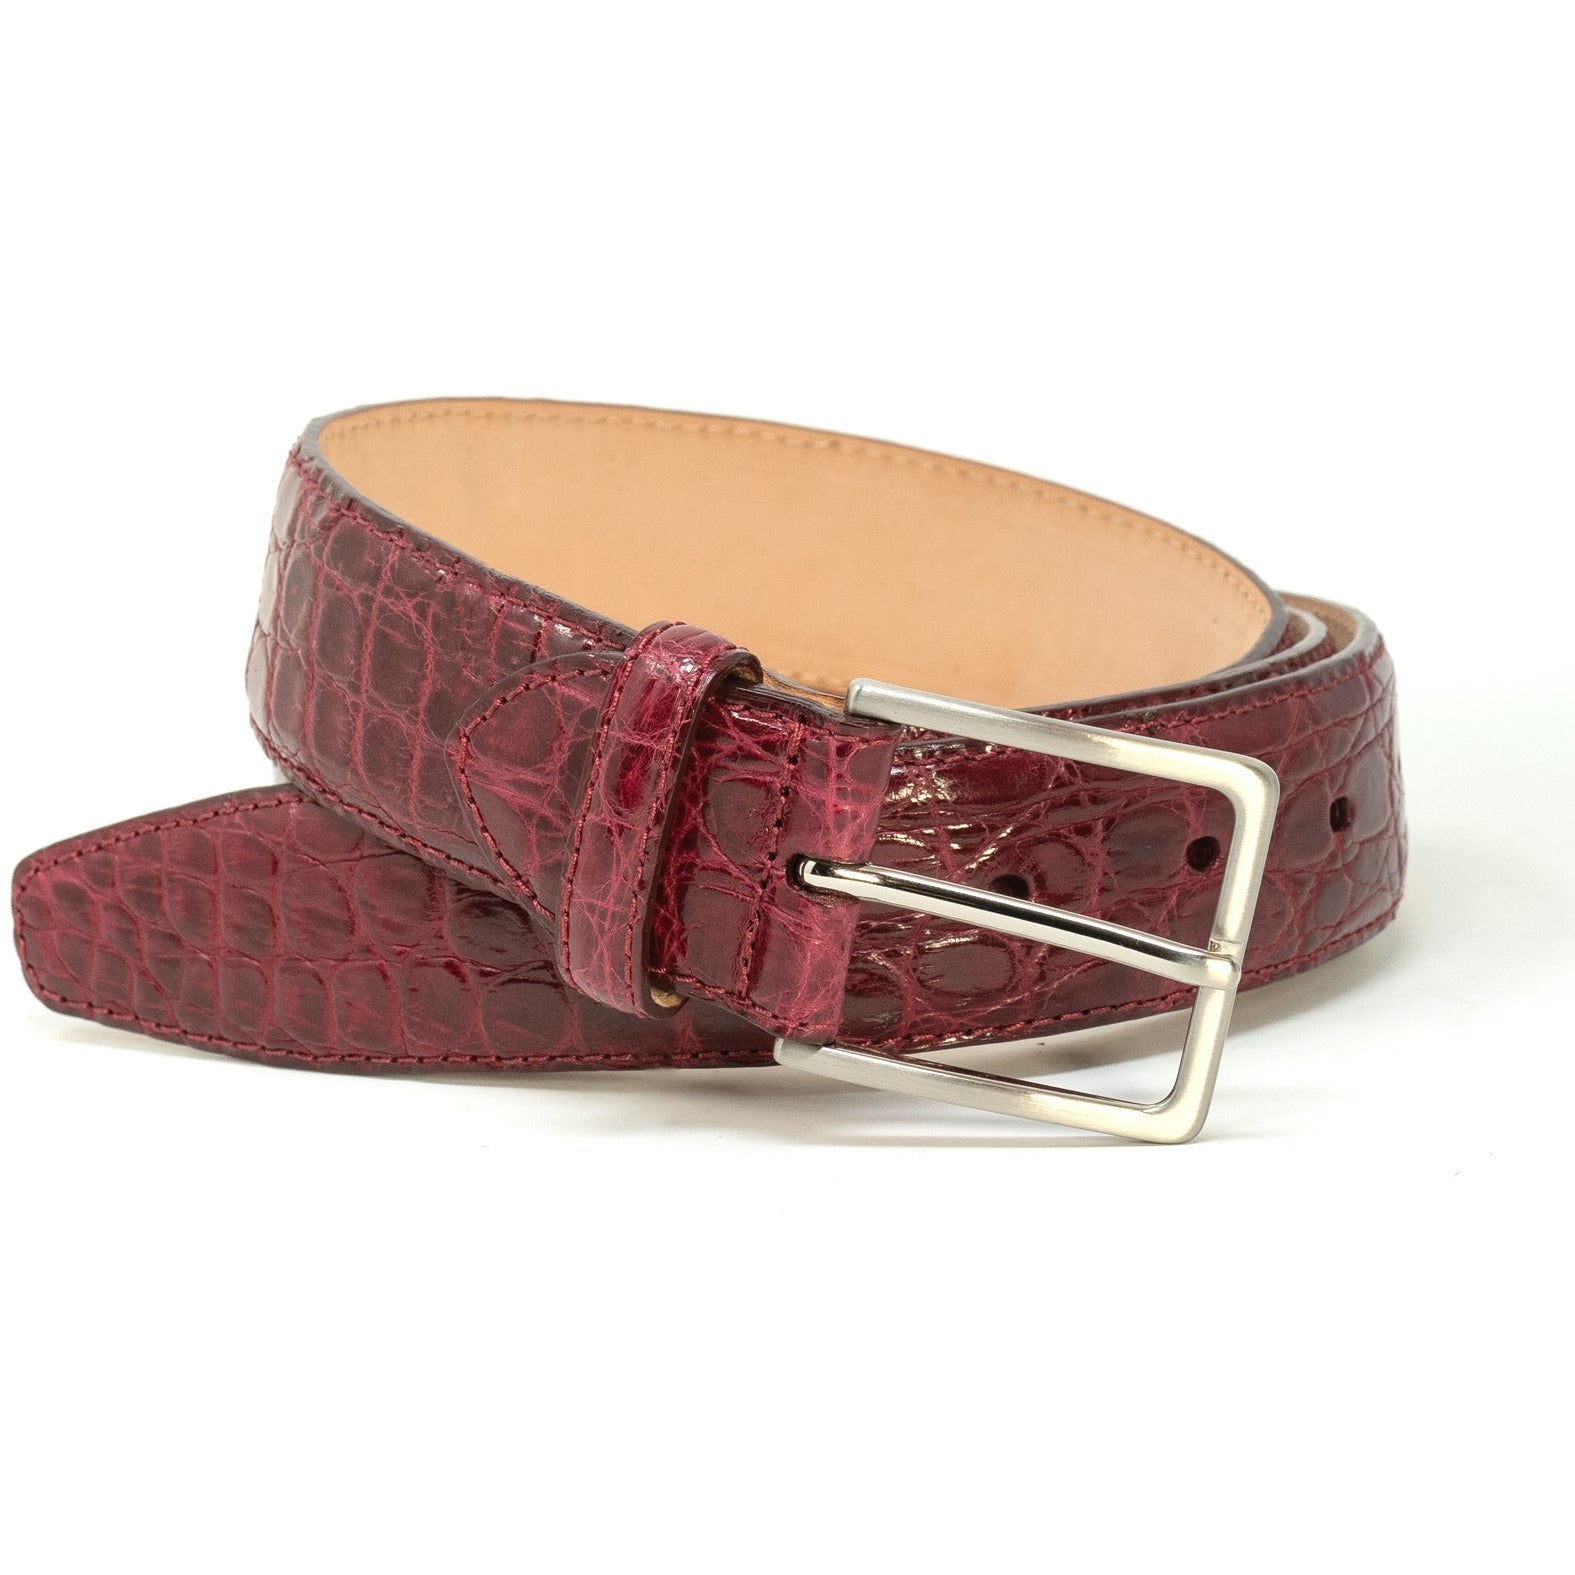 Burgundy Crocodile Belt - New Spring Summer 2020 Collection SAN44 107